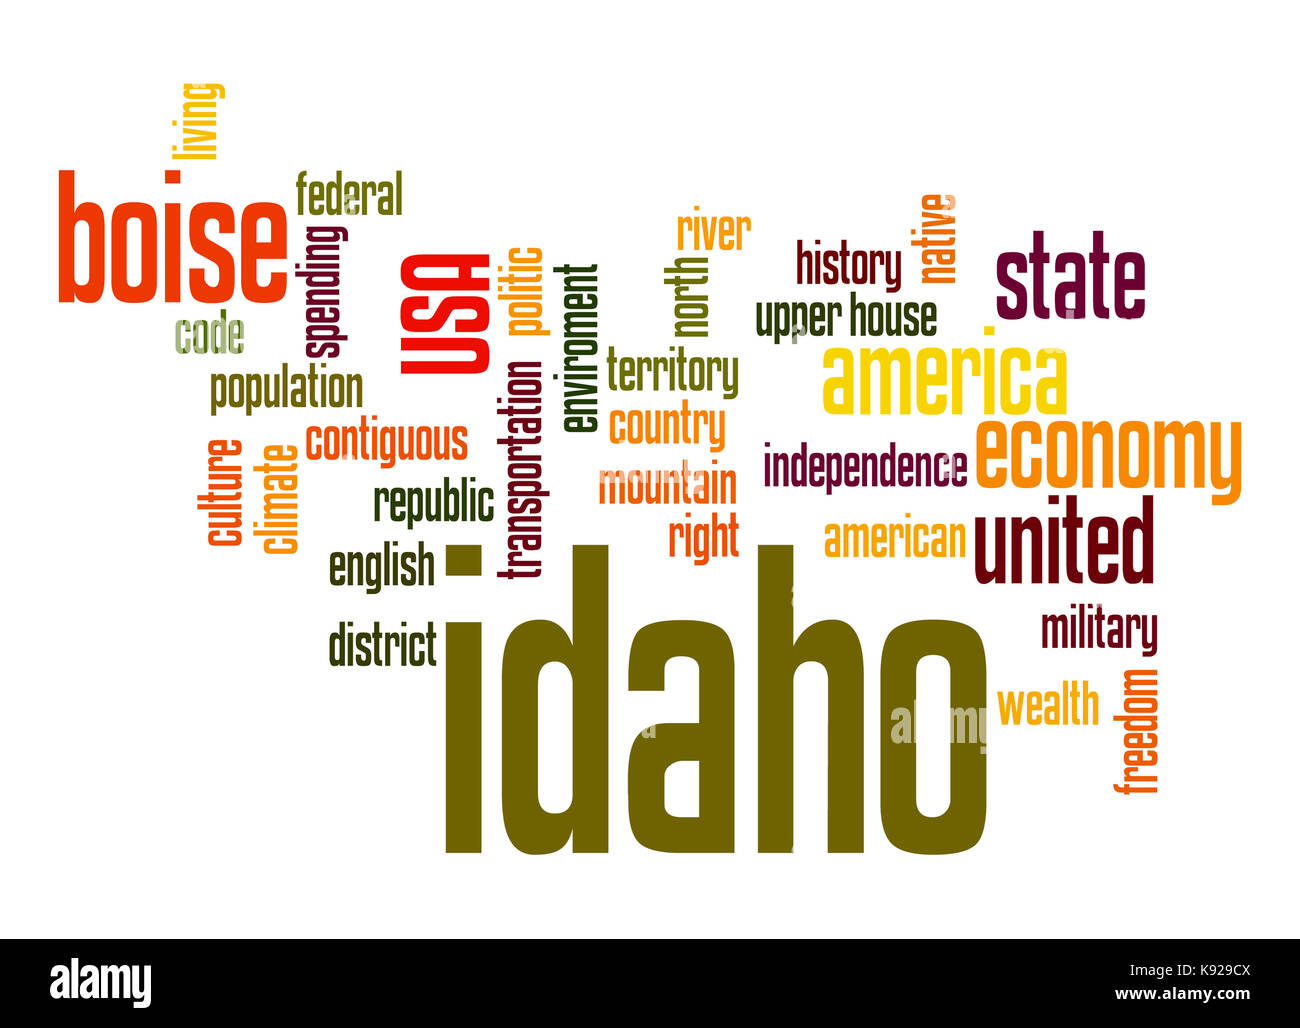 Idaho word cloud - Stock Image